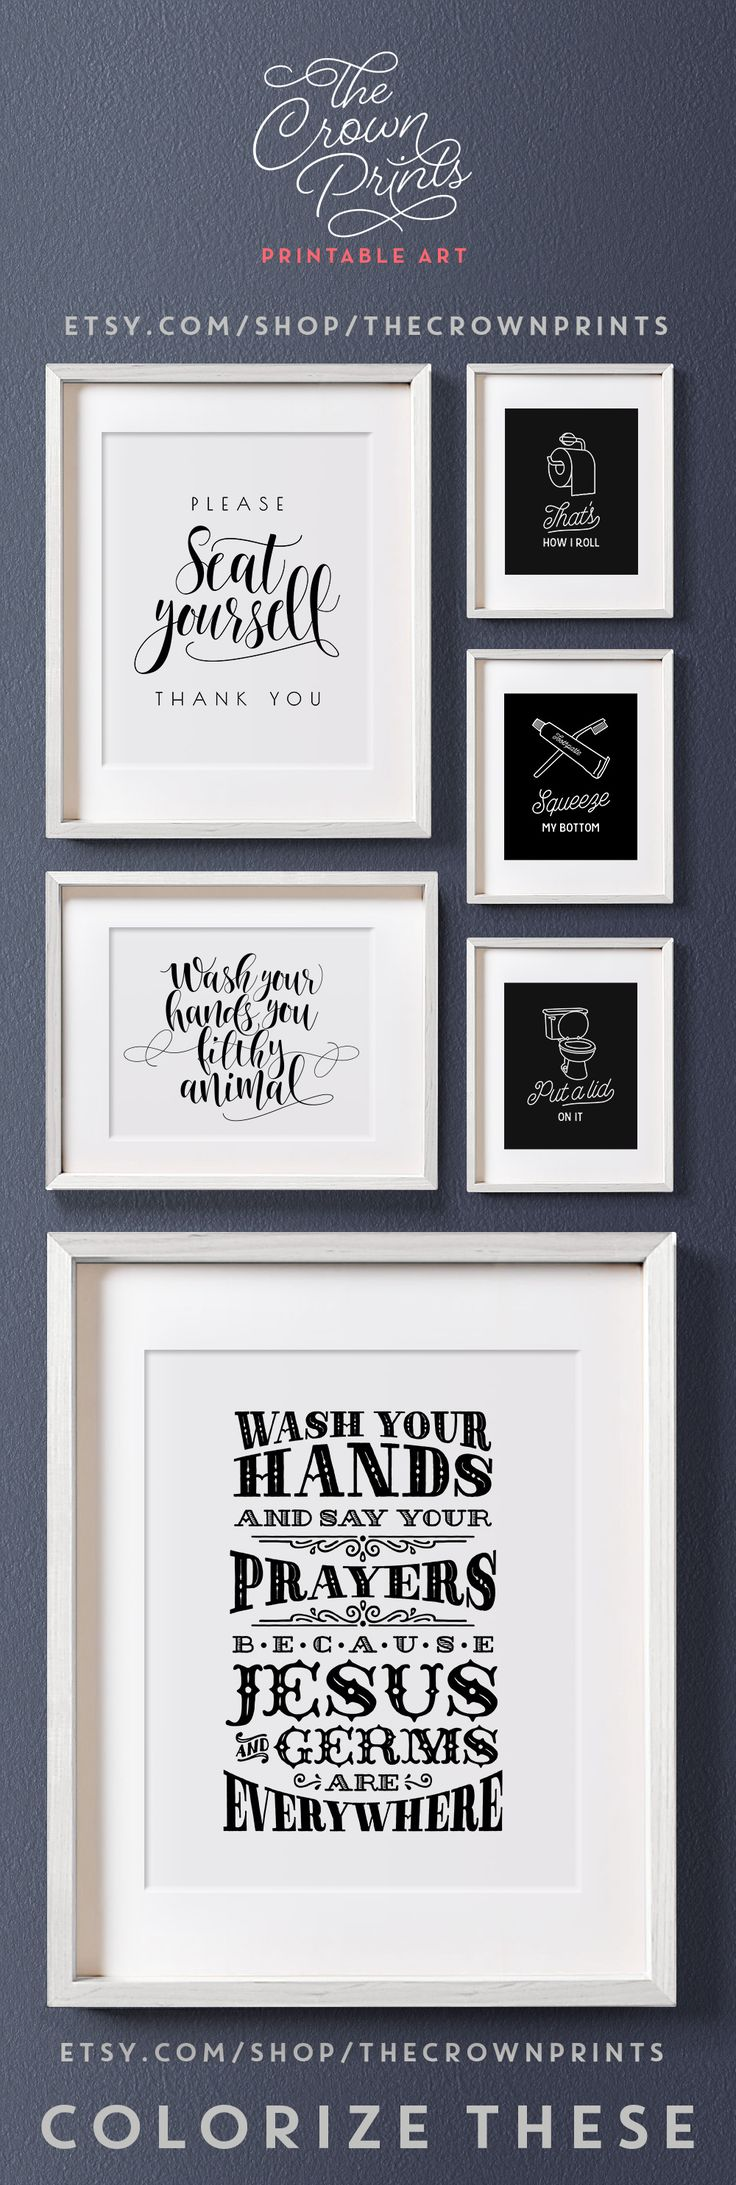 148 best Bathroom images by The Crown Prints on Pinterest | Bathroom ...